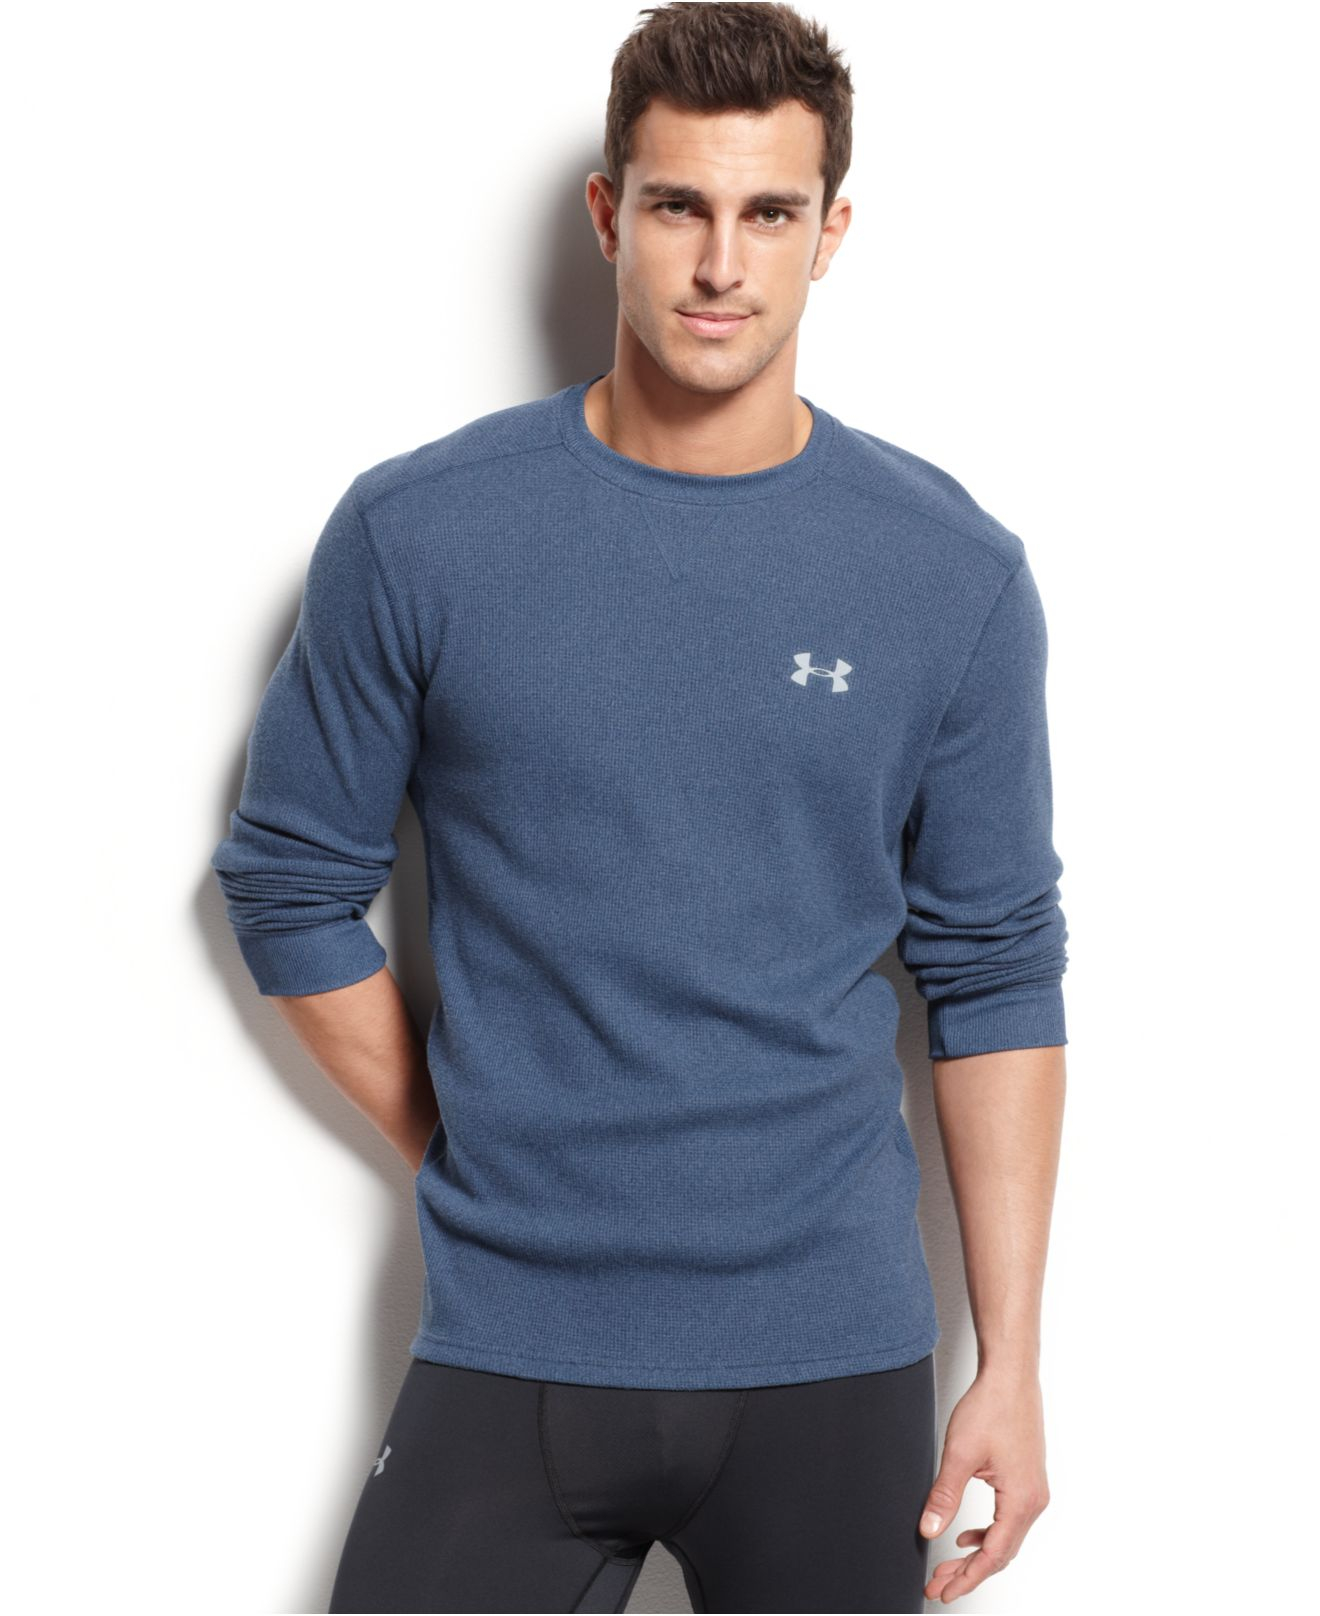 Lyst - Under armour Men's Amplify Long-sleeve Thermal T-shirt in ...